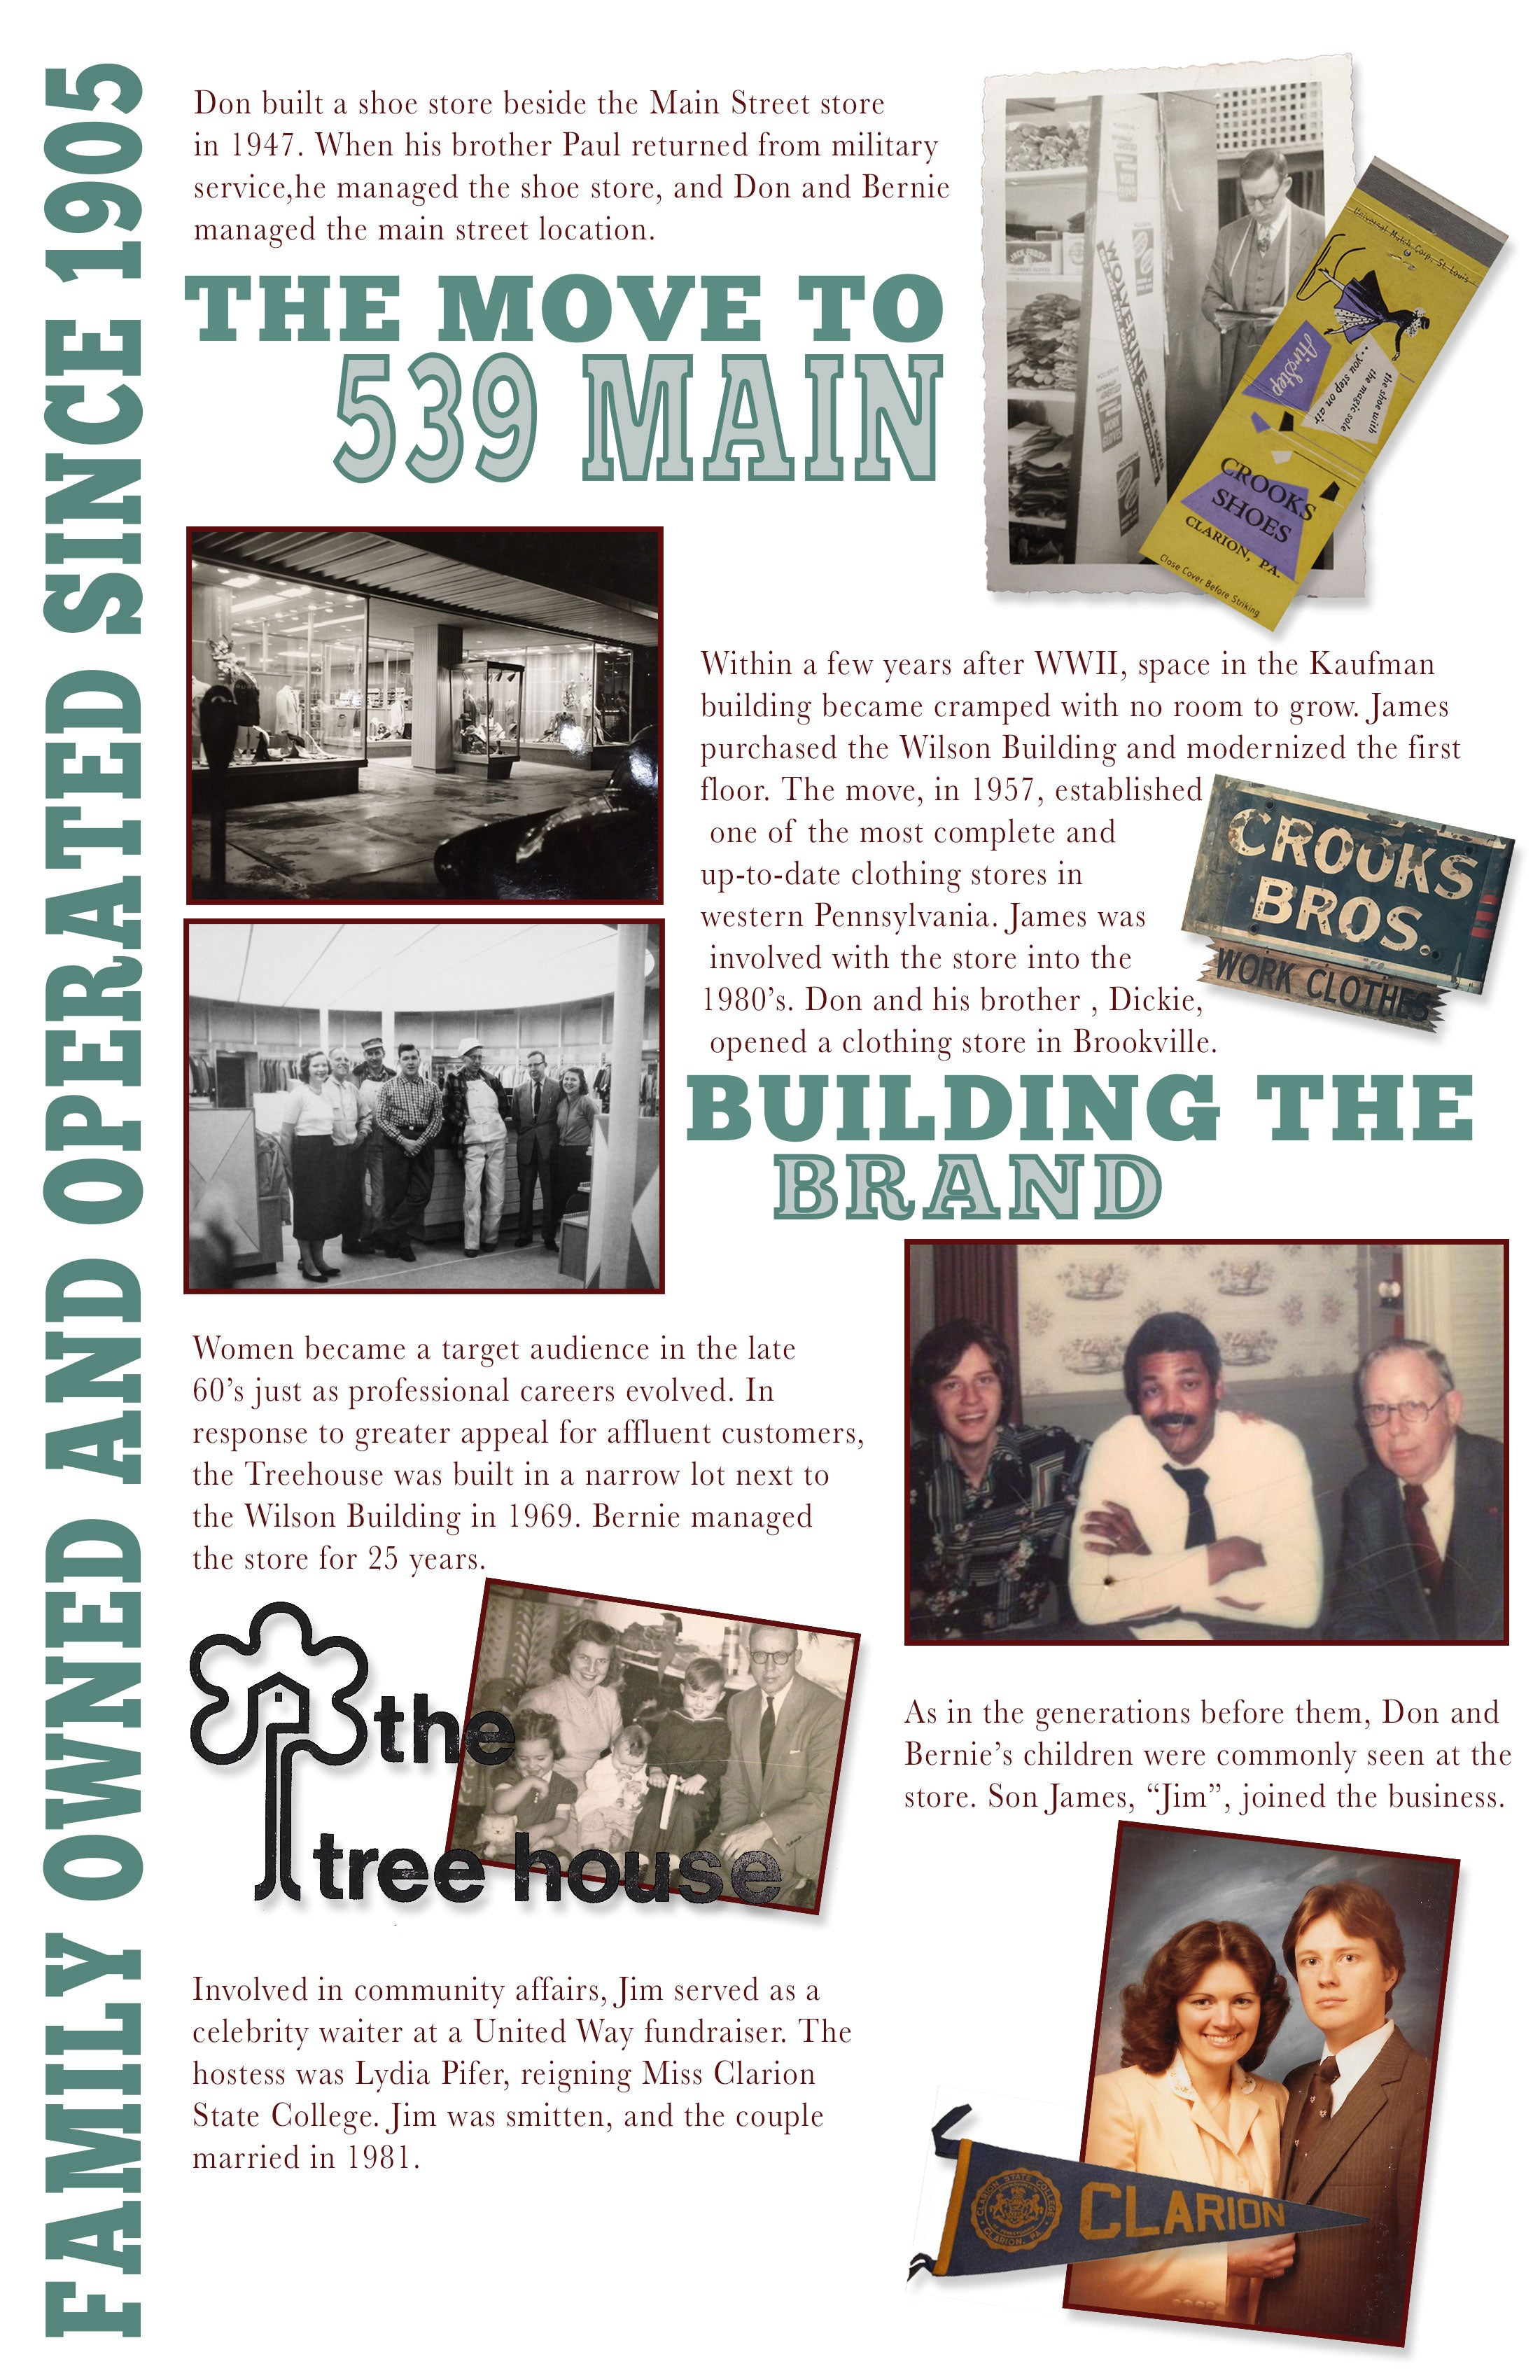 "Don built a shoe store beside the Main Street store in 1947. When his brother Paul returned from military service,He managed the shoe store, and Don and Bernie managed the main street location.  Within a few years after WWII, space in the Kaufman building became cramped with no room to grow. James  purchased the Wilson Building and modernized the first  floor. The move, in 1957, established  one of the most complete and  up-to-date clothing stores in  western Pennsylvania. James was  involved with the store into the  1980's. Don and his brother , Dickie,  opened a clothing store in Brookville.  Women became a target audience in the late  60's just as professional careers evolved. In  response to greater appeal for affluent customers, the Treehouse was built in a narrow lot next to  the Wilson Building in 1969. Bernie managed  the store for 25 years. As in the generations before them, Don and  Bernie's children were commonly seen at the  store. Son James, ""Jim"", joined the business.  Involved in community affairs, Jim served as a celebrity waiter at a United Way fundraiser. The hostess was Lydia Pifer, reigning Miss Clarion  State College. Jim was smitten, and the couple married in 1981."